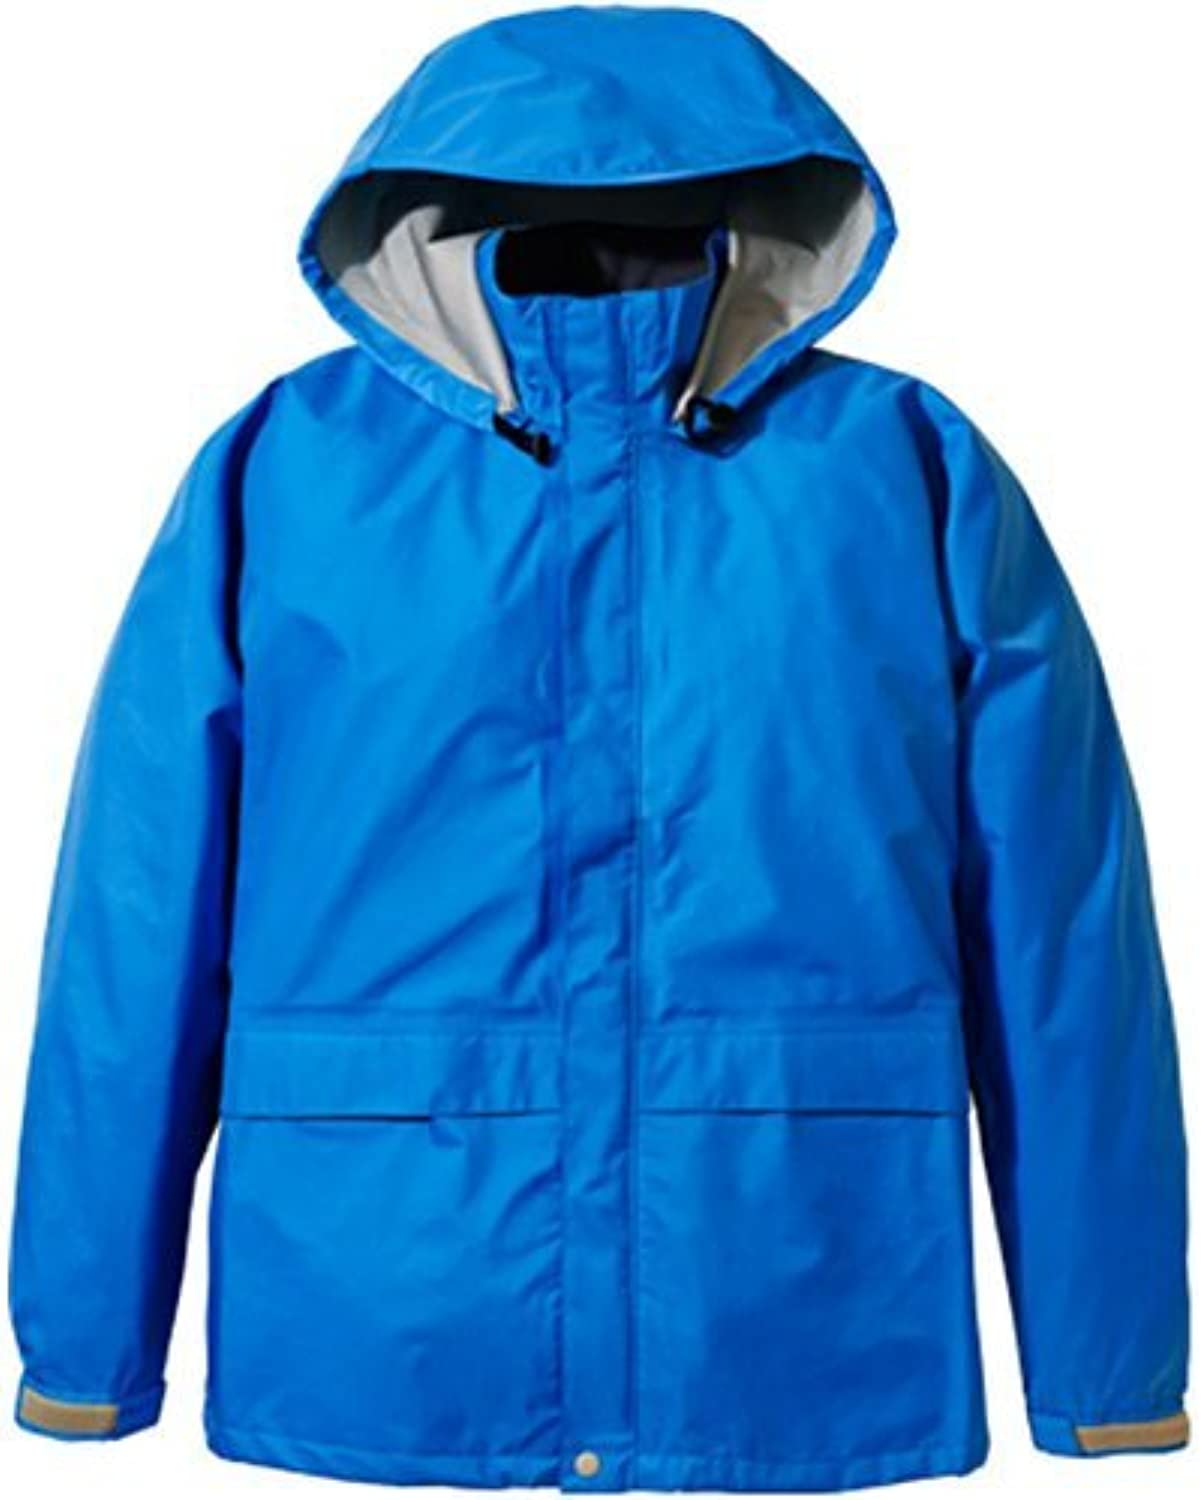 Aspromonte (PuroMonte) GoreTex rain jacket for men [Japan domestic production goods] Royal blueee SJ135M RBL M